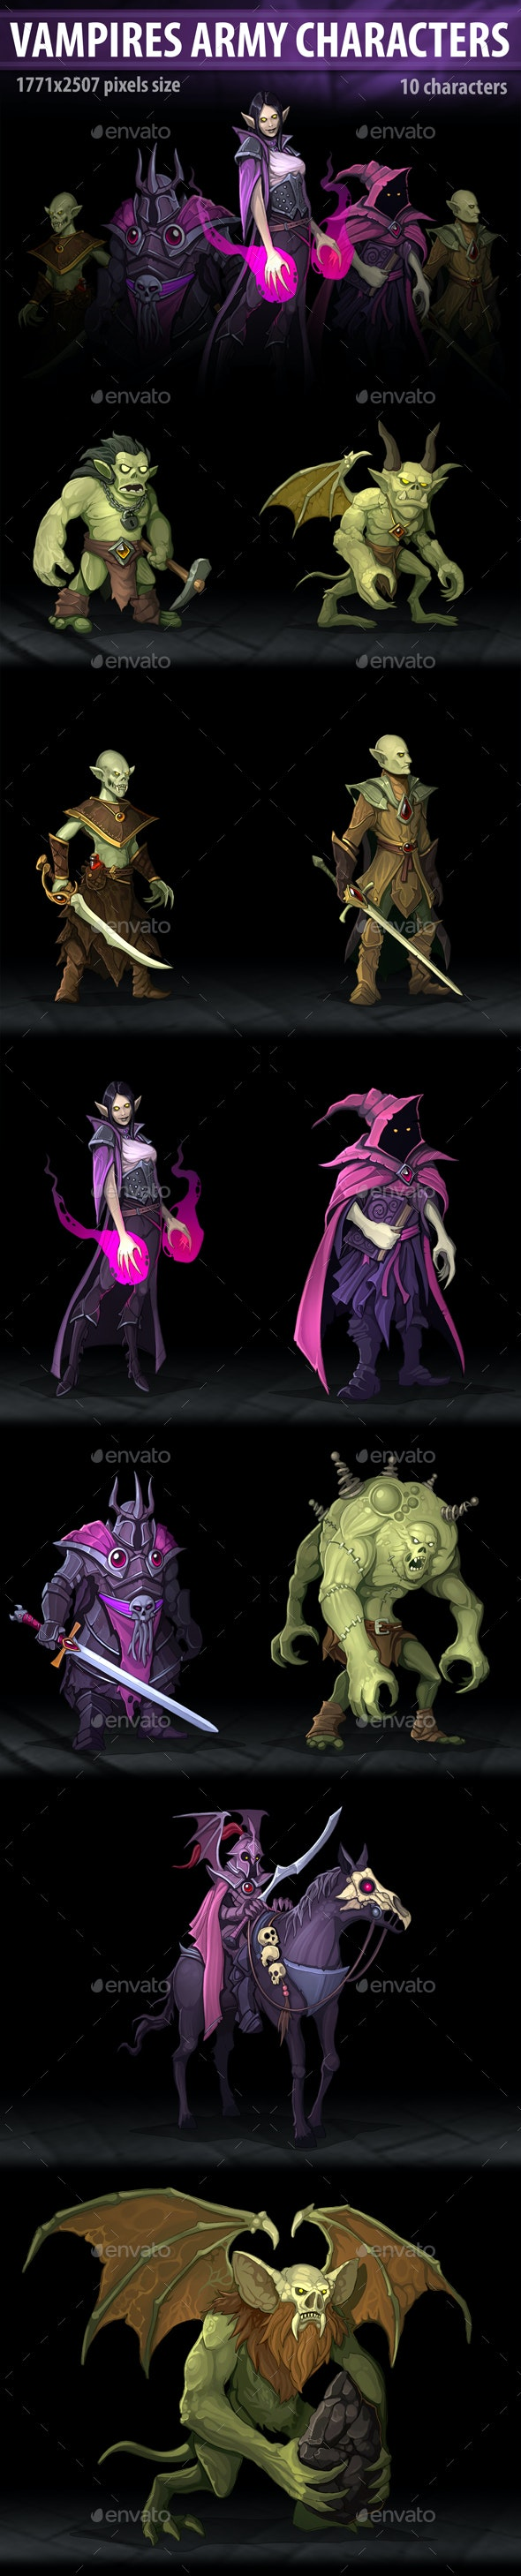 Vampires Army Characters - Miscellaneous Game Assets